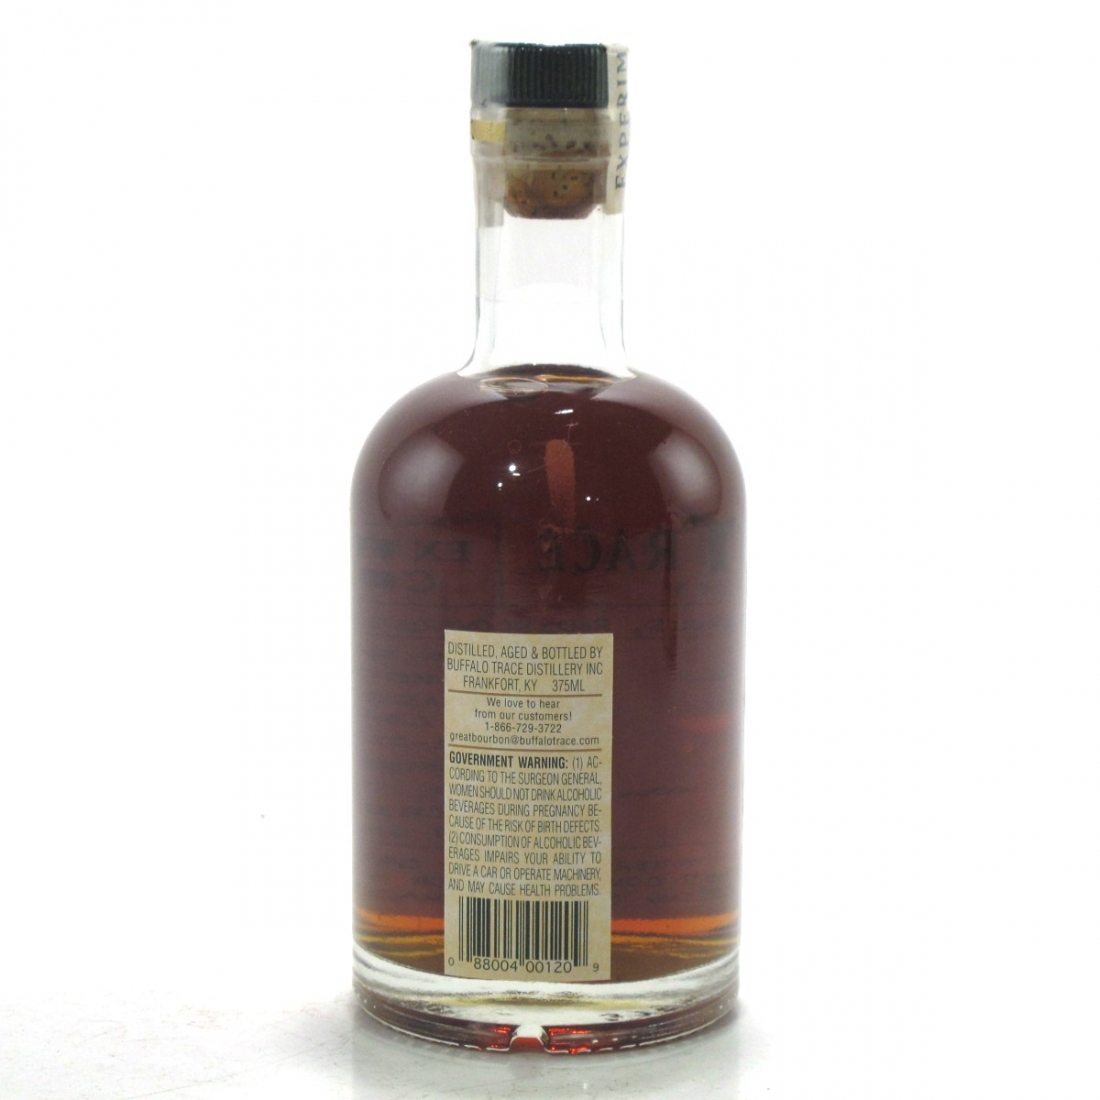 Buffalo Trace 1989 Experimental Collection 21 Year Old 37.5cl / Rediscovered 1989 Barrels